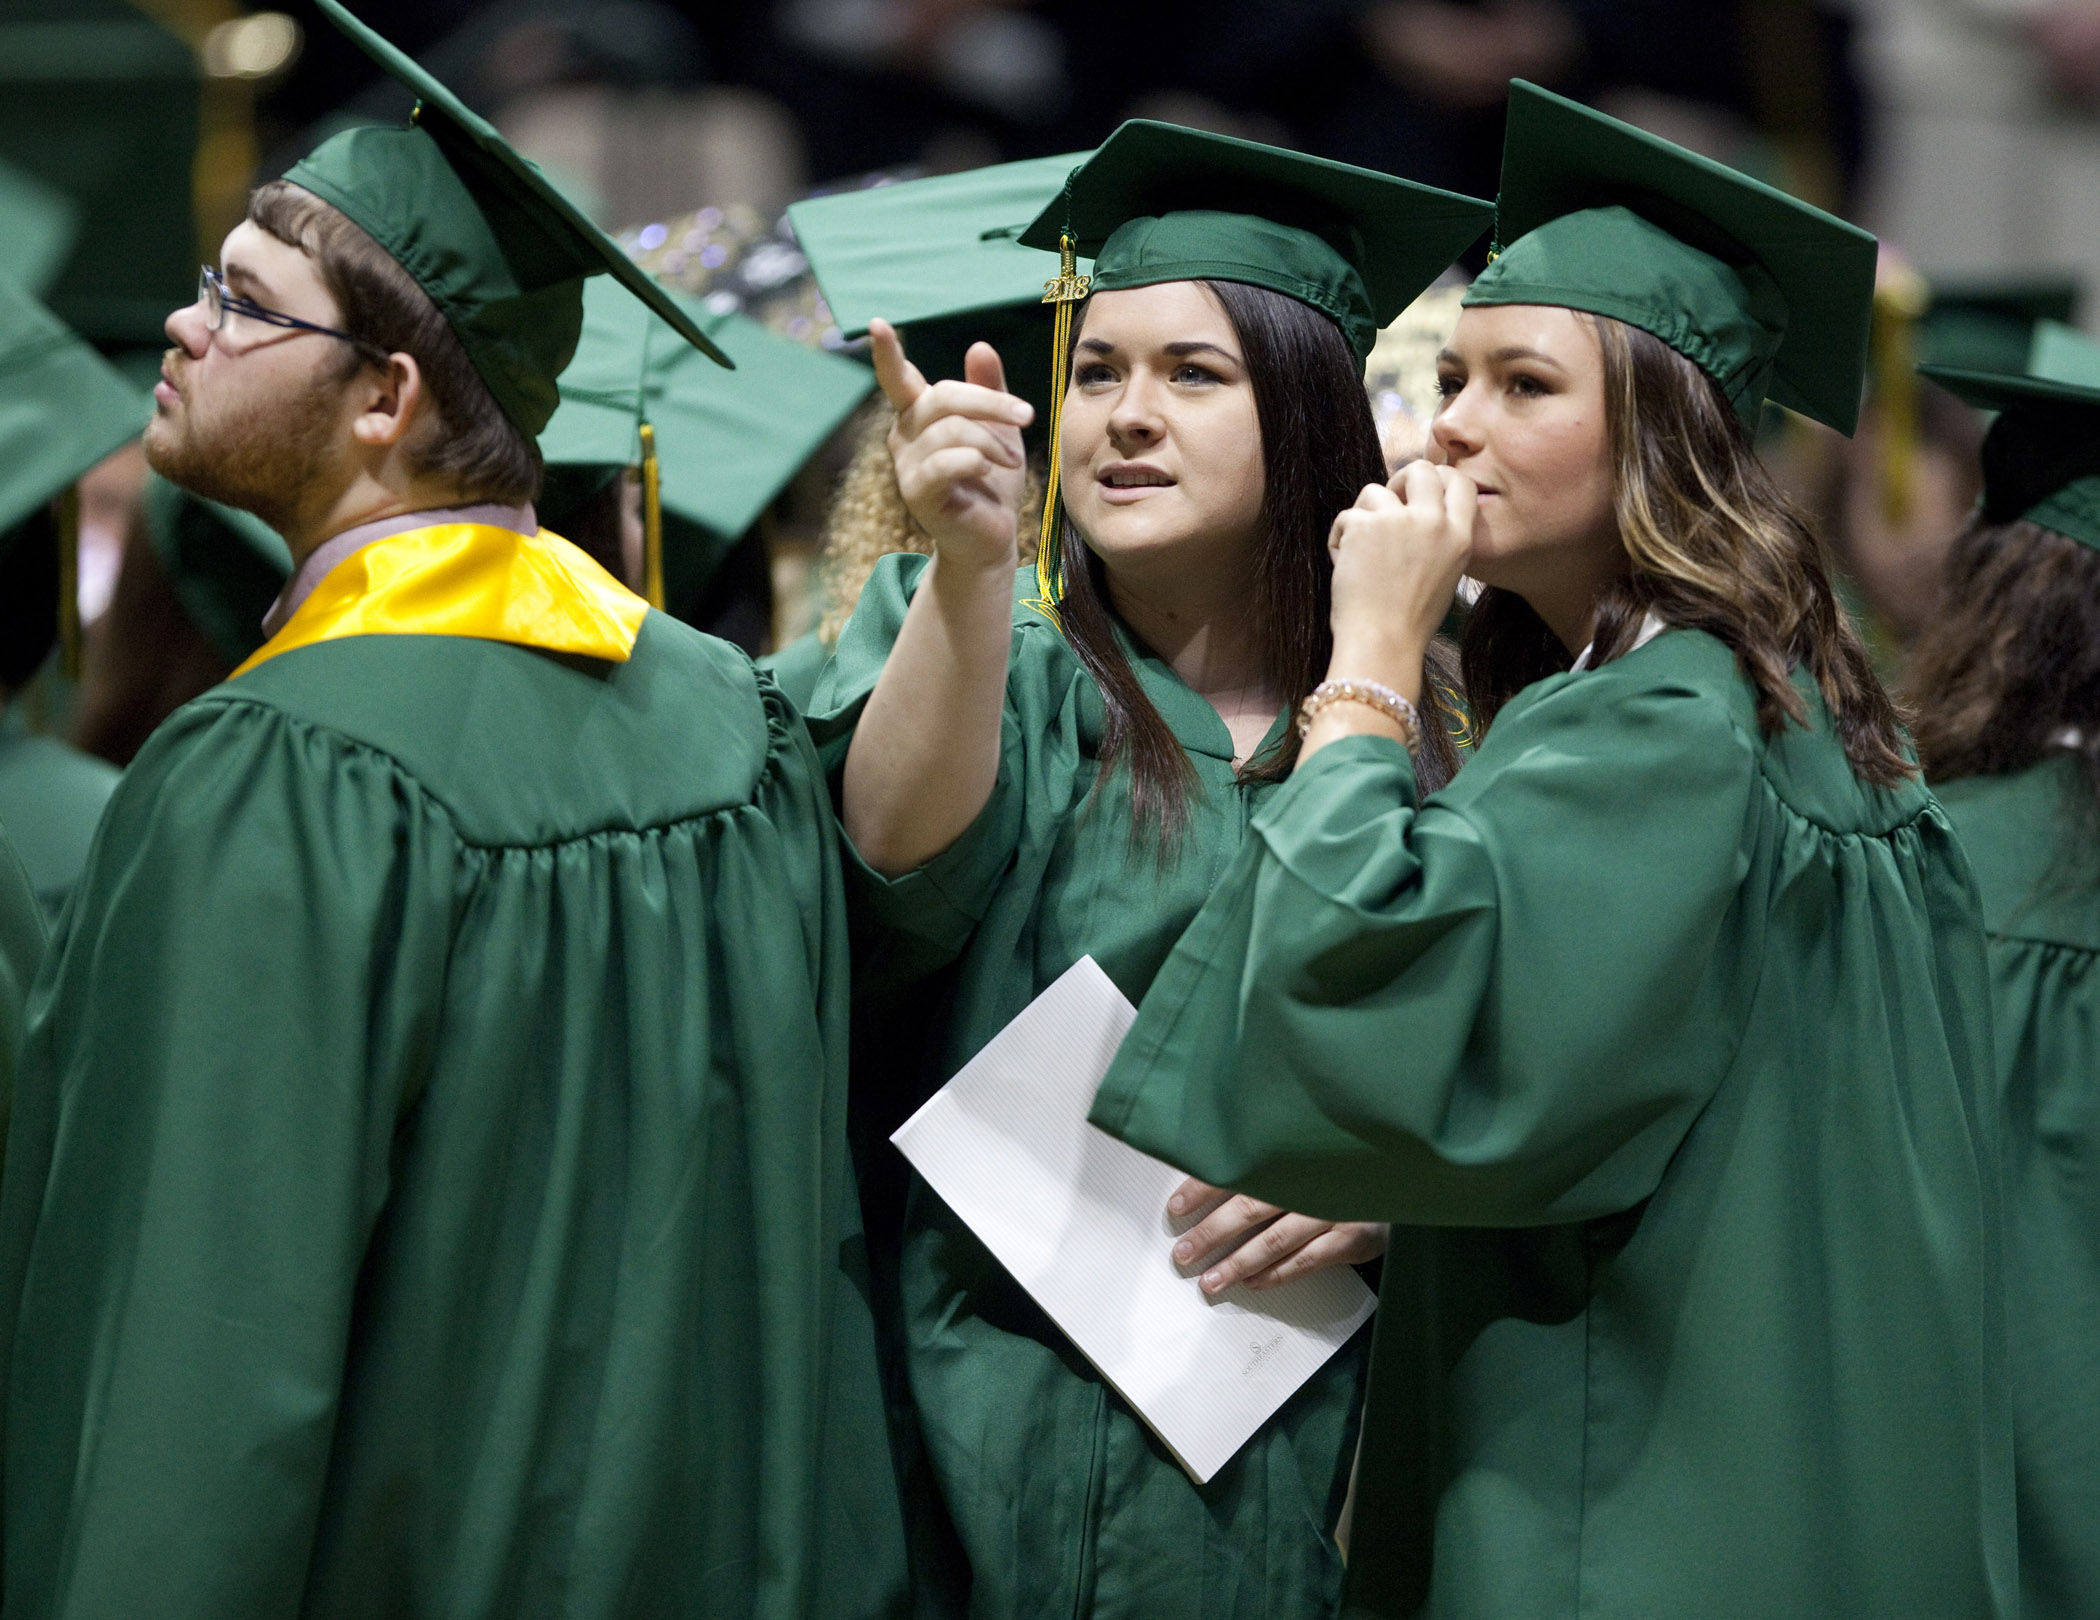 Amber Marie Goetz southeastern confers degrees on more than 1,000